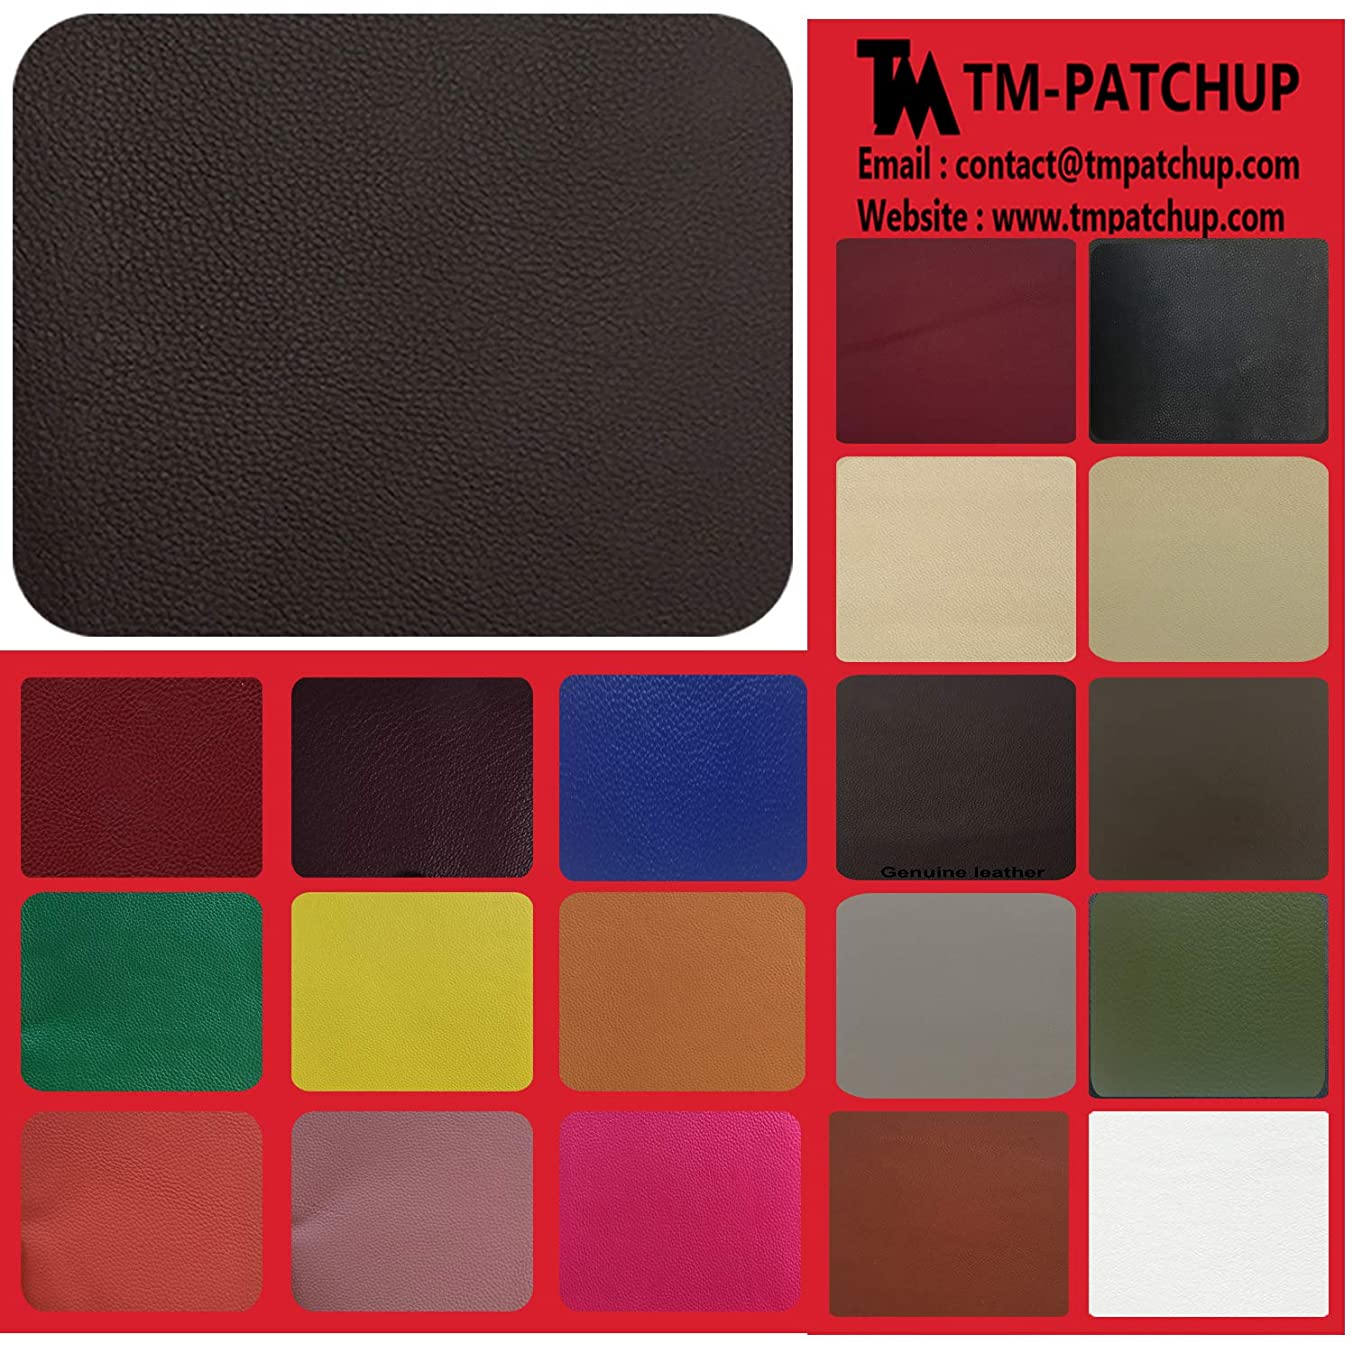 TMpatchup Genuine Leather and Vinyl Repair Patches Kit - Grain Self Adhesive Leather to Repair Furniture, Couch, Sofa, Jacket - Multiple Colors and Sizes Available (Dark Brown, 3'' x 3'')